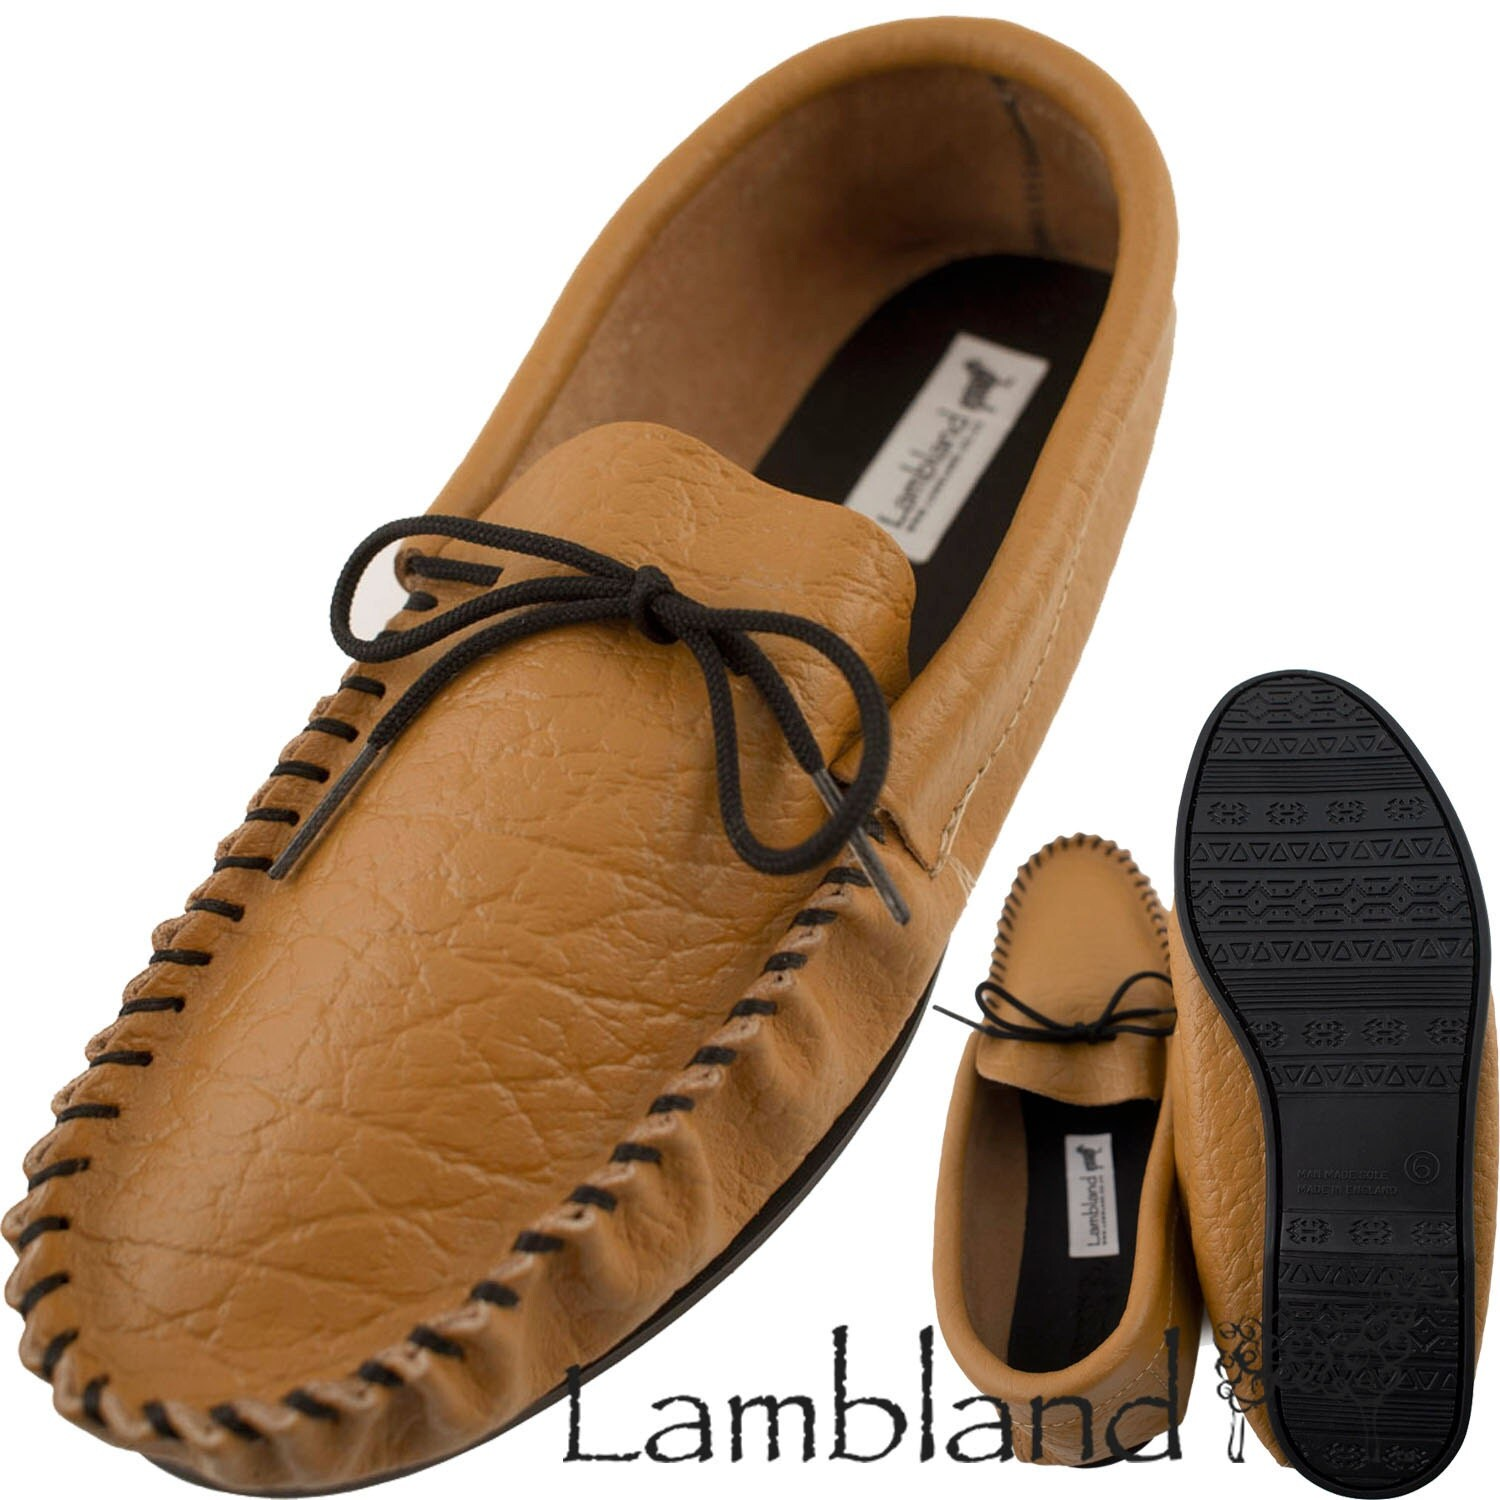 Mens  Gents Genuine Leather Moccasin Slippers with Leather Lining and PVC Sole in Mustard